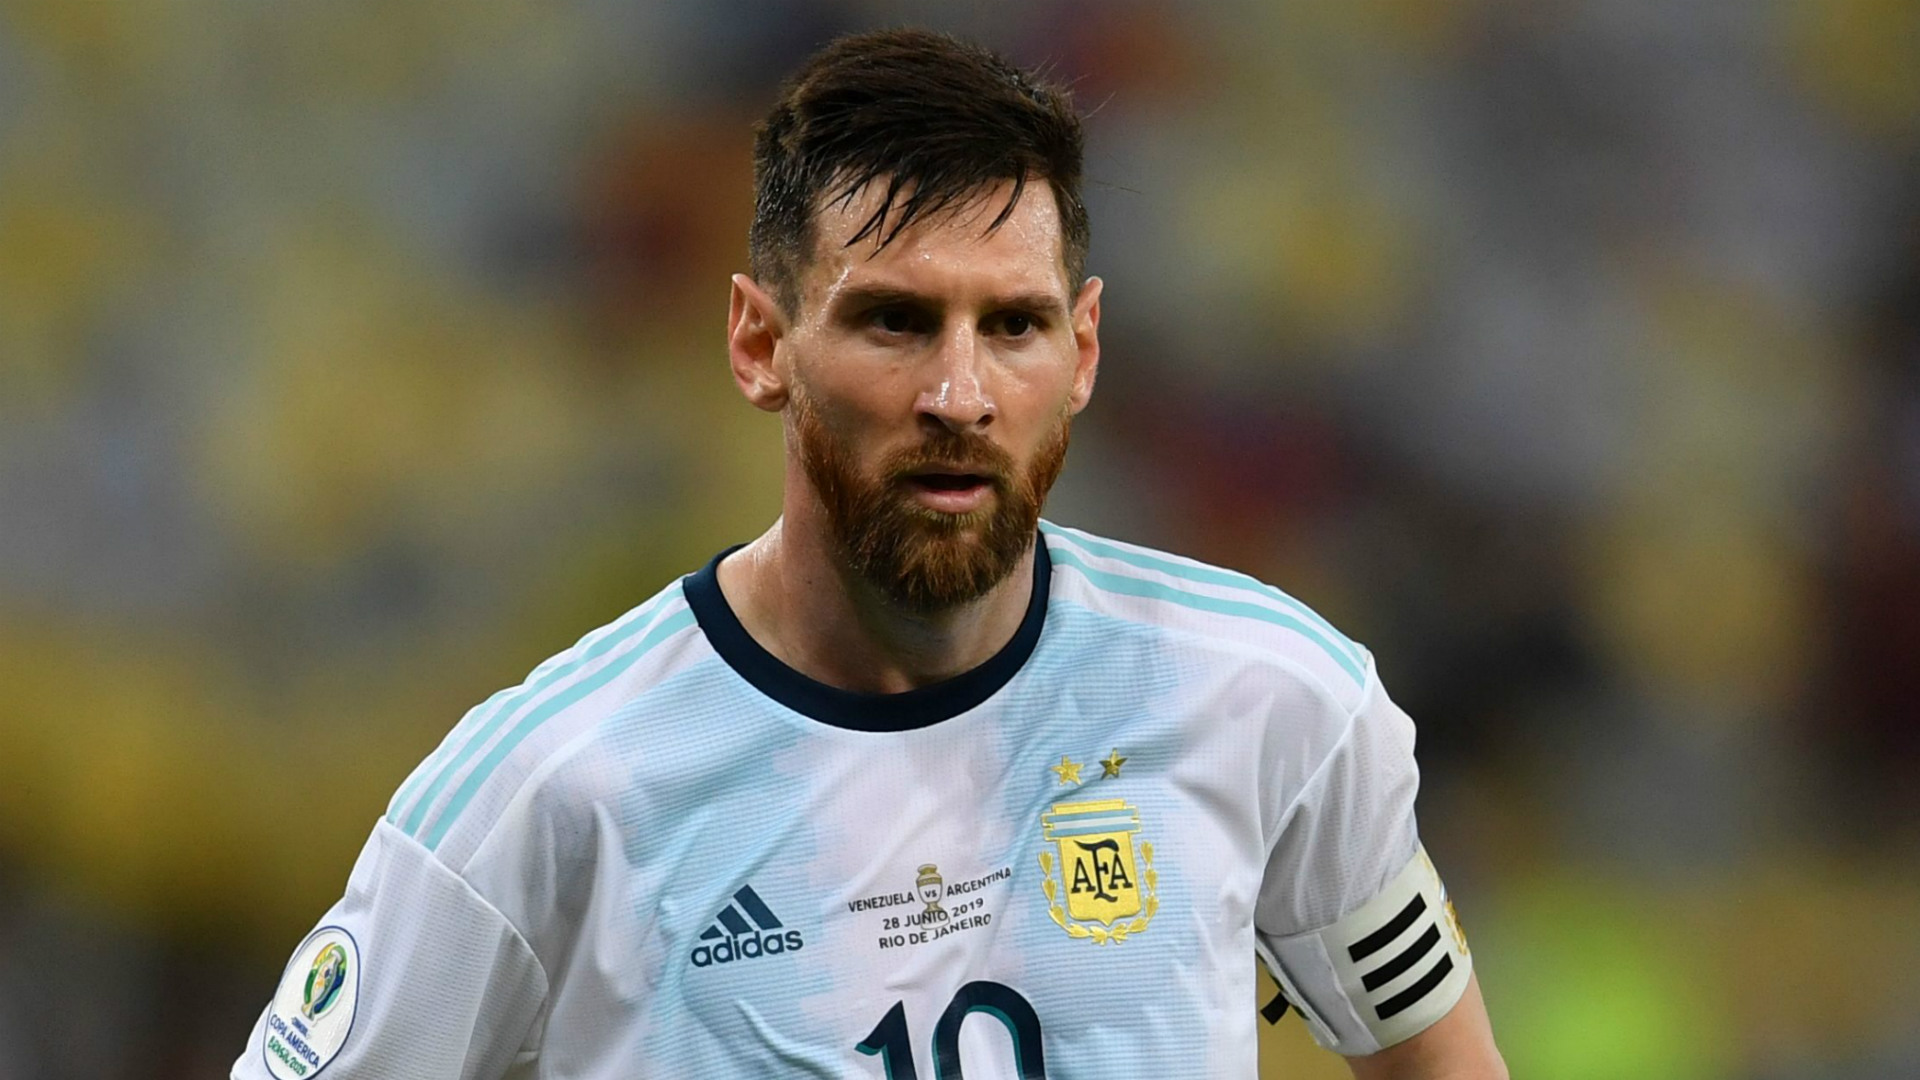 Messi's Copa America performances defended by Argentina boss Scaloni